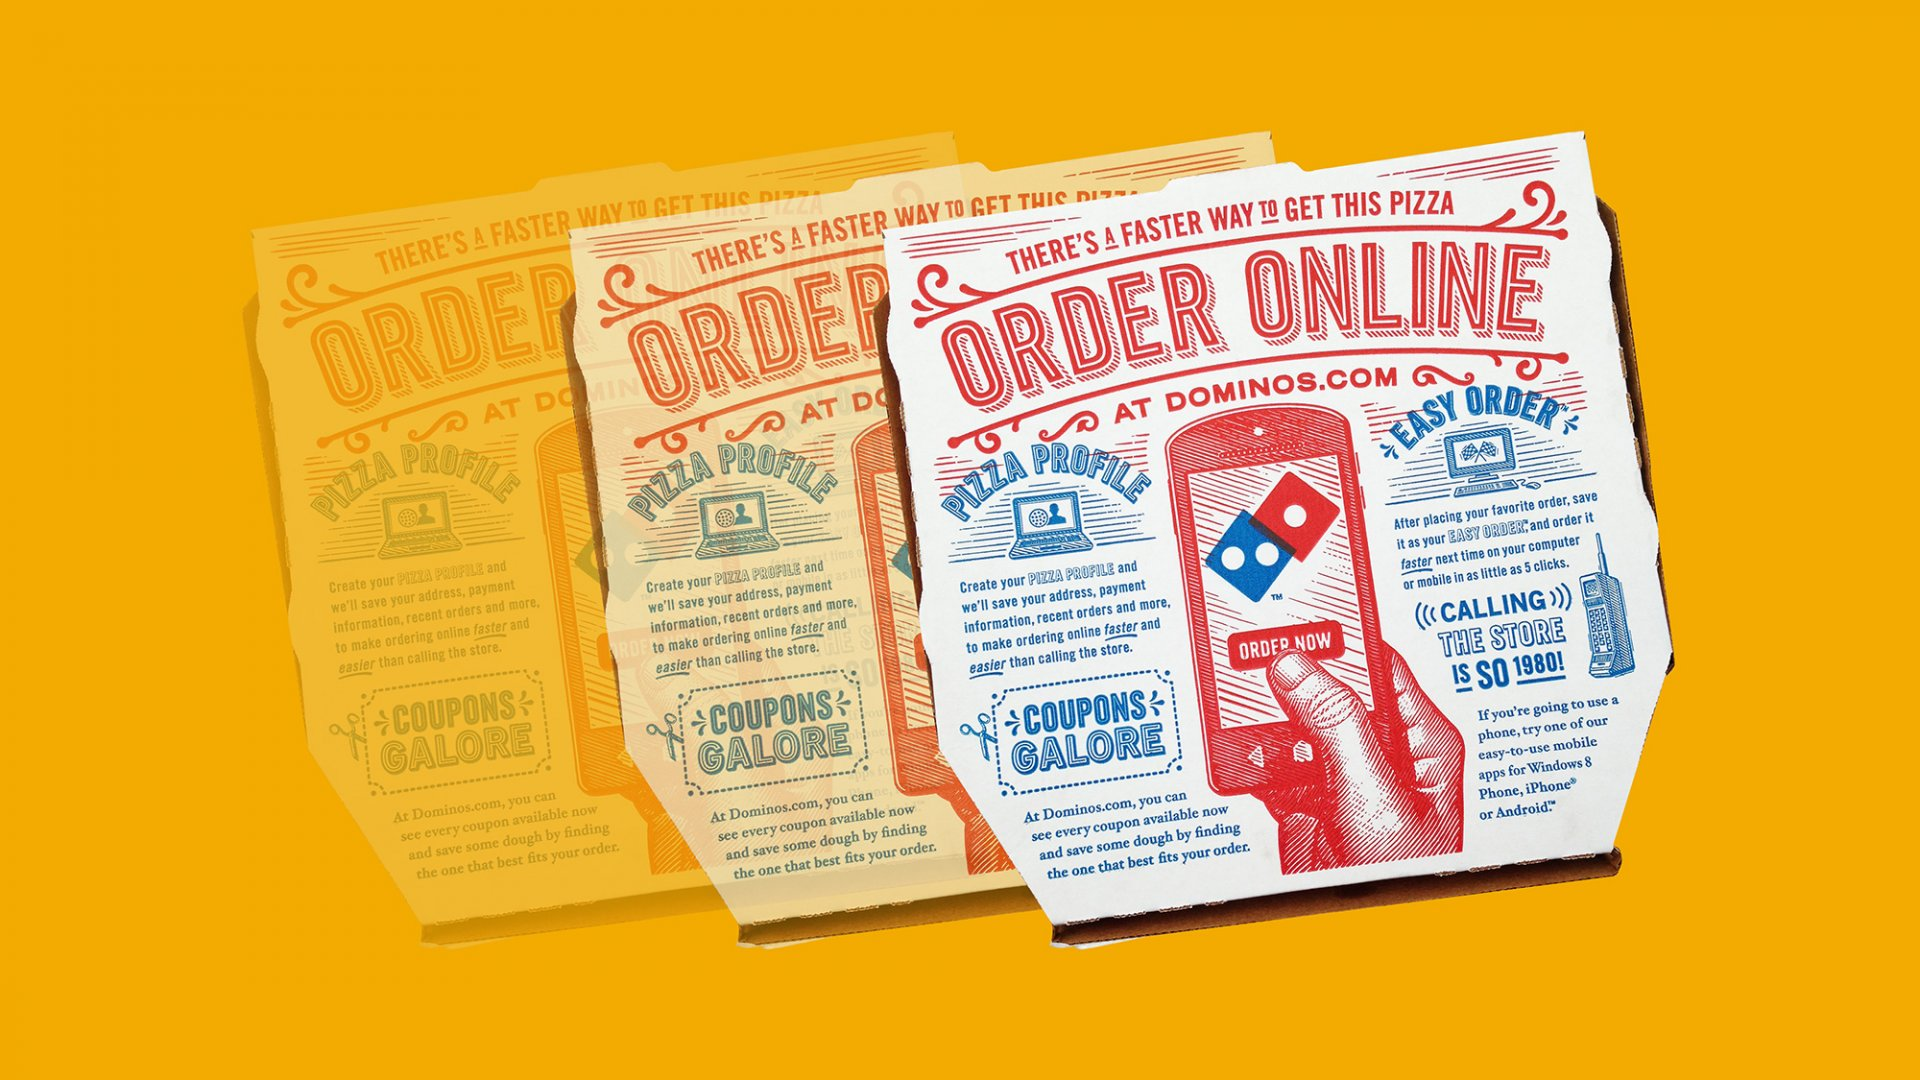 10 Years Ago, 'Cardboard' Pizza Almost Killed Domino's. Then, Domino's Did Something Brilliant